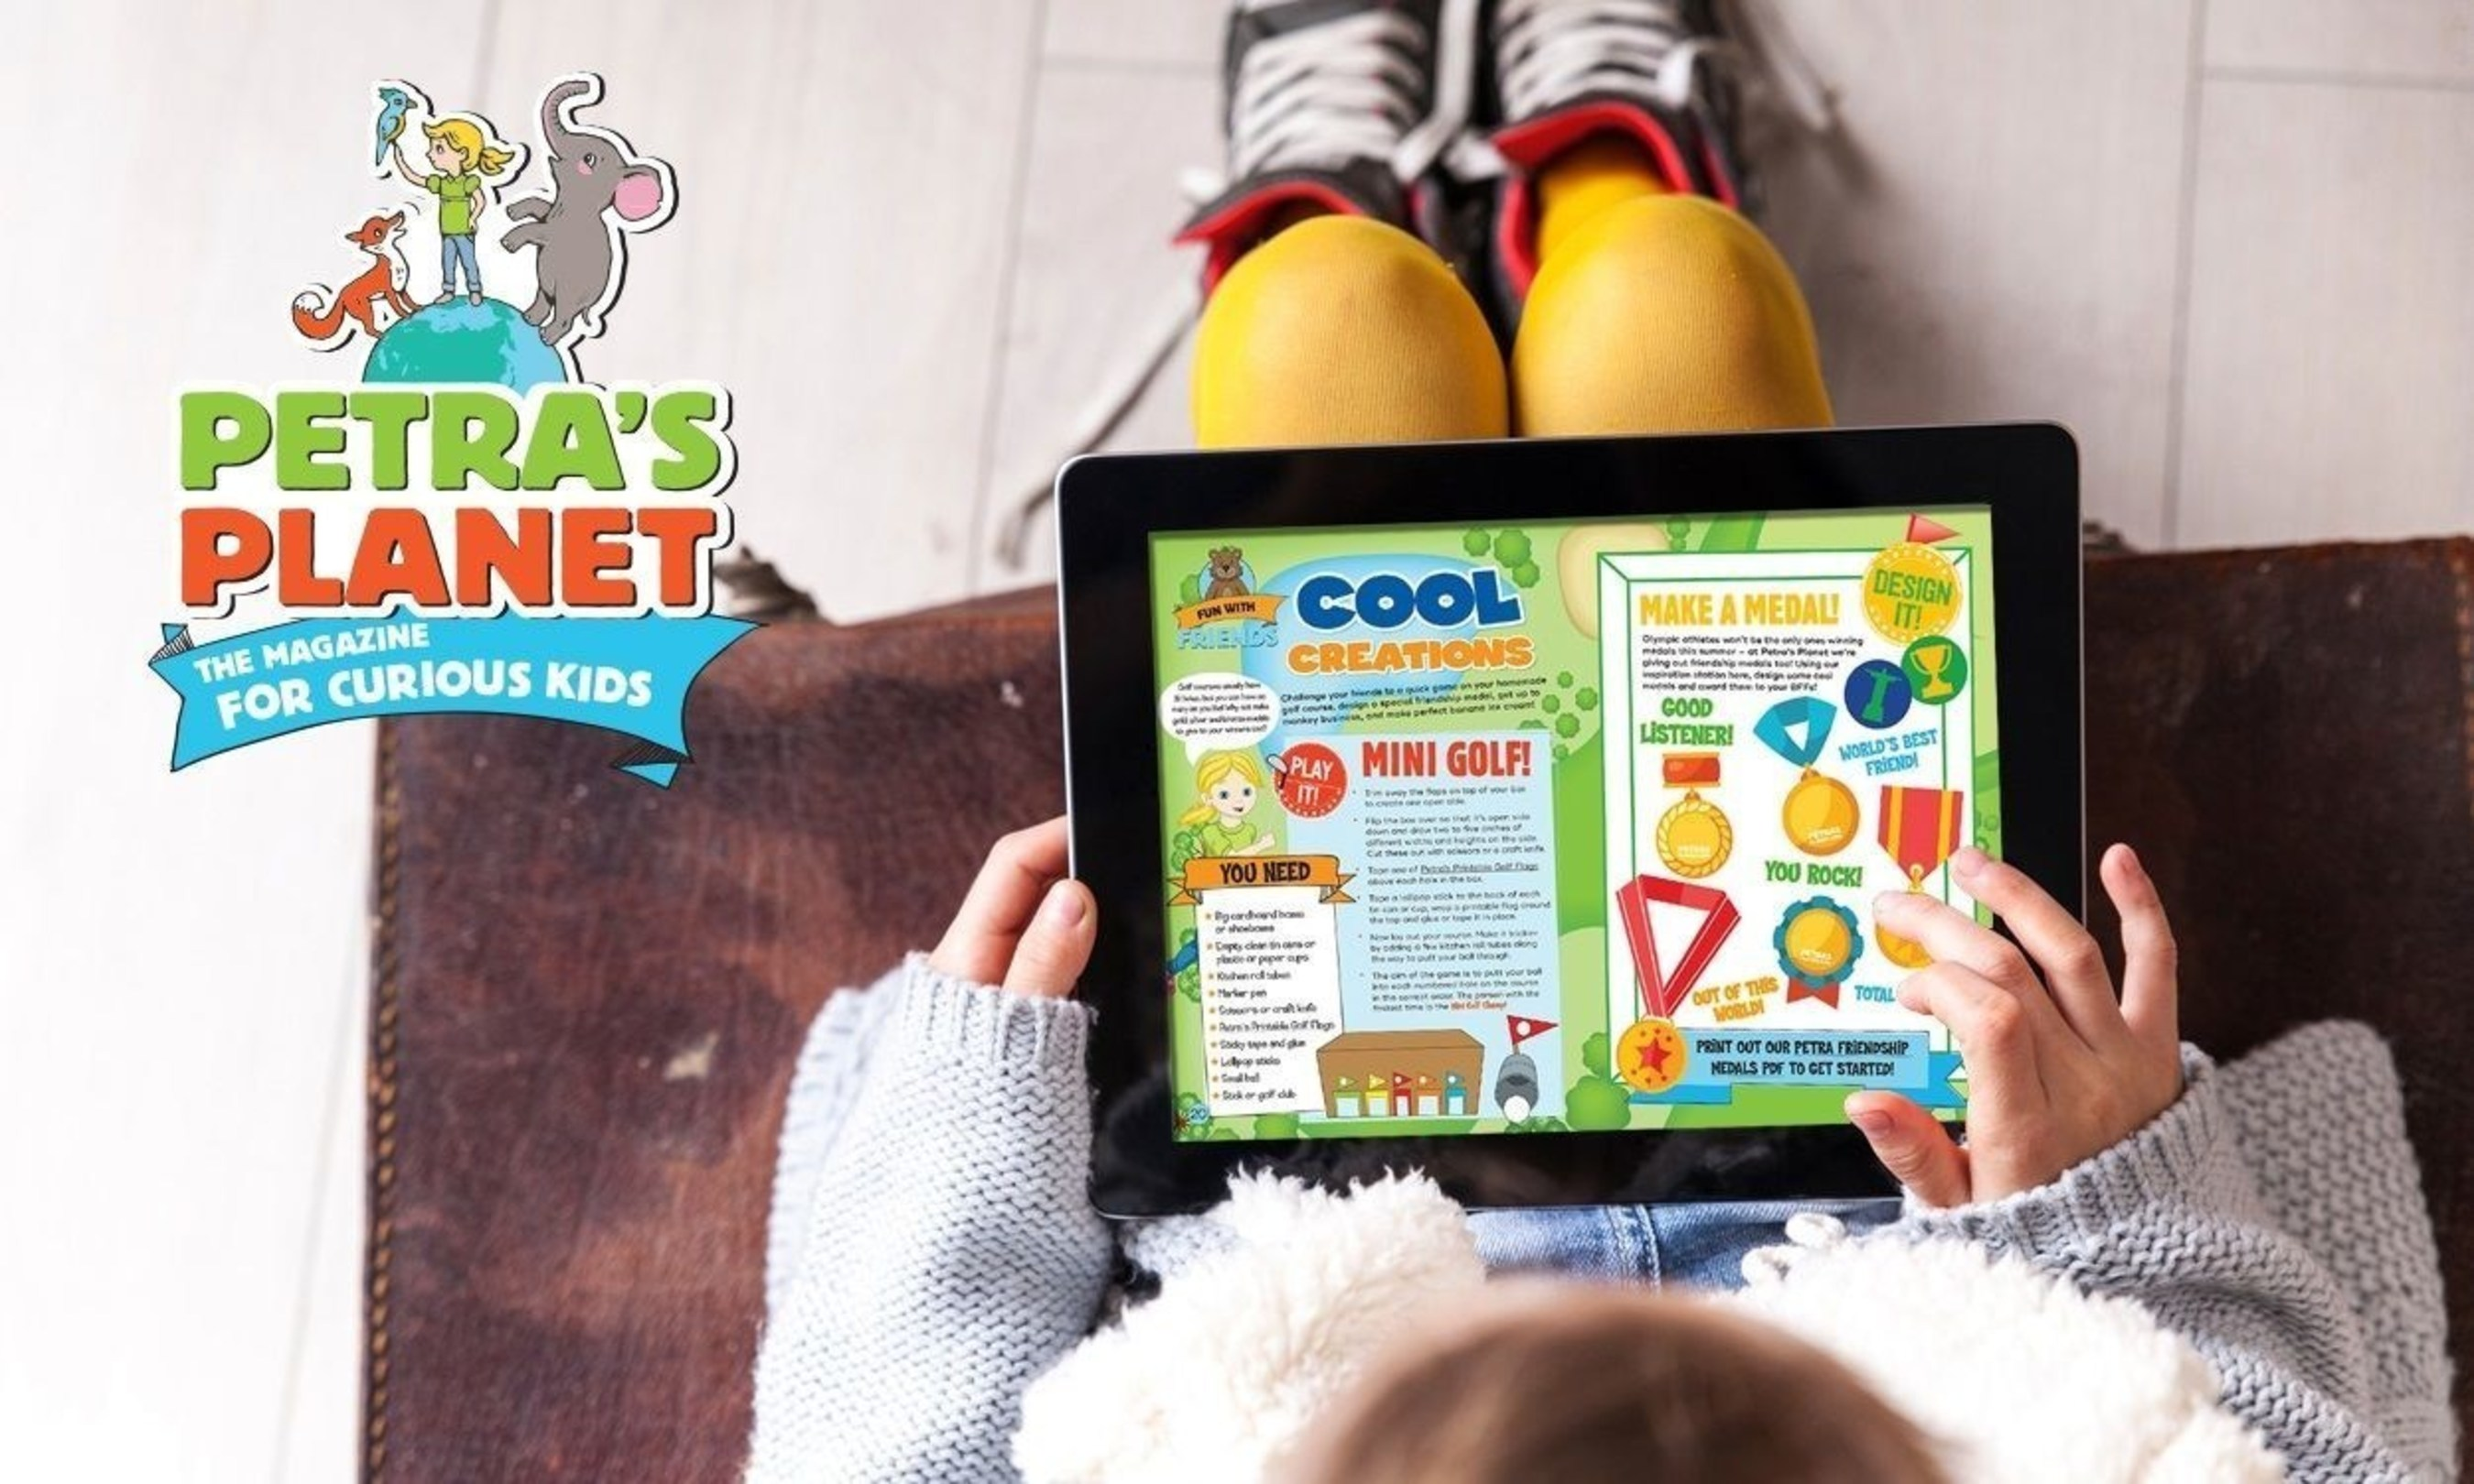 Launch of 'Petra's Planet' Interactive e-Magazine for Children Brings Nordic Style Learning to the UK and Ireland